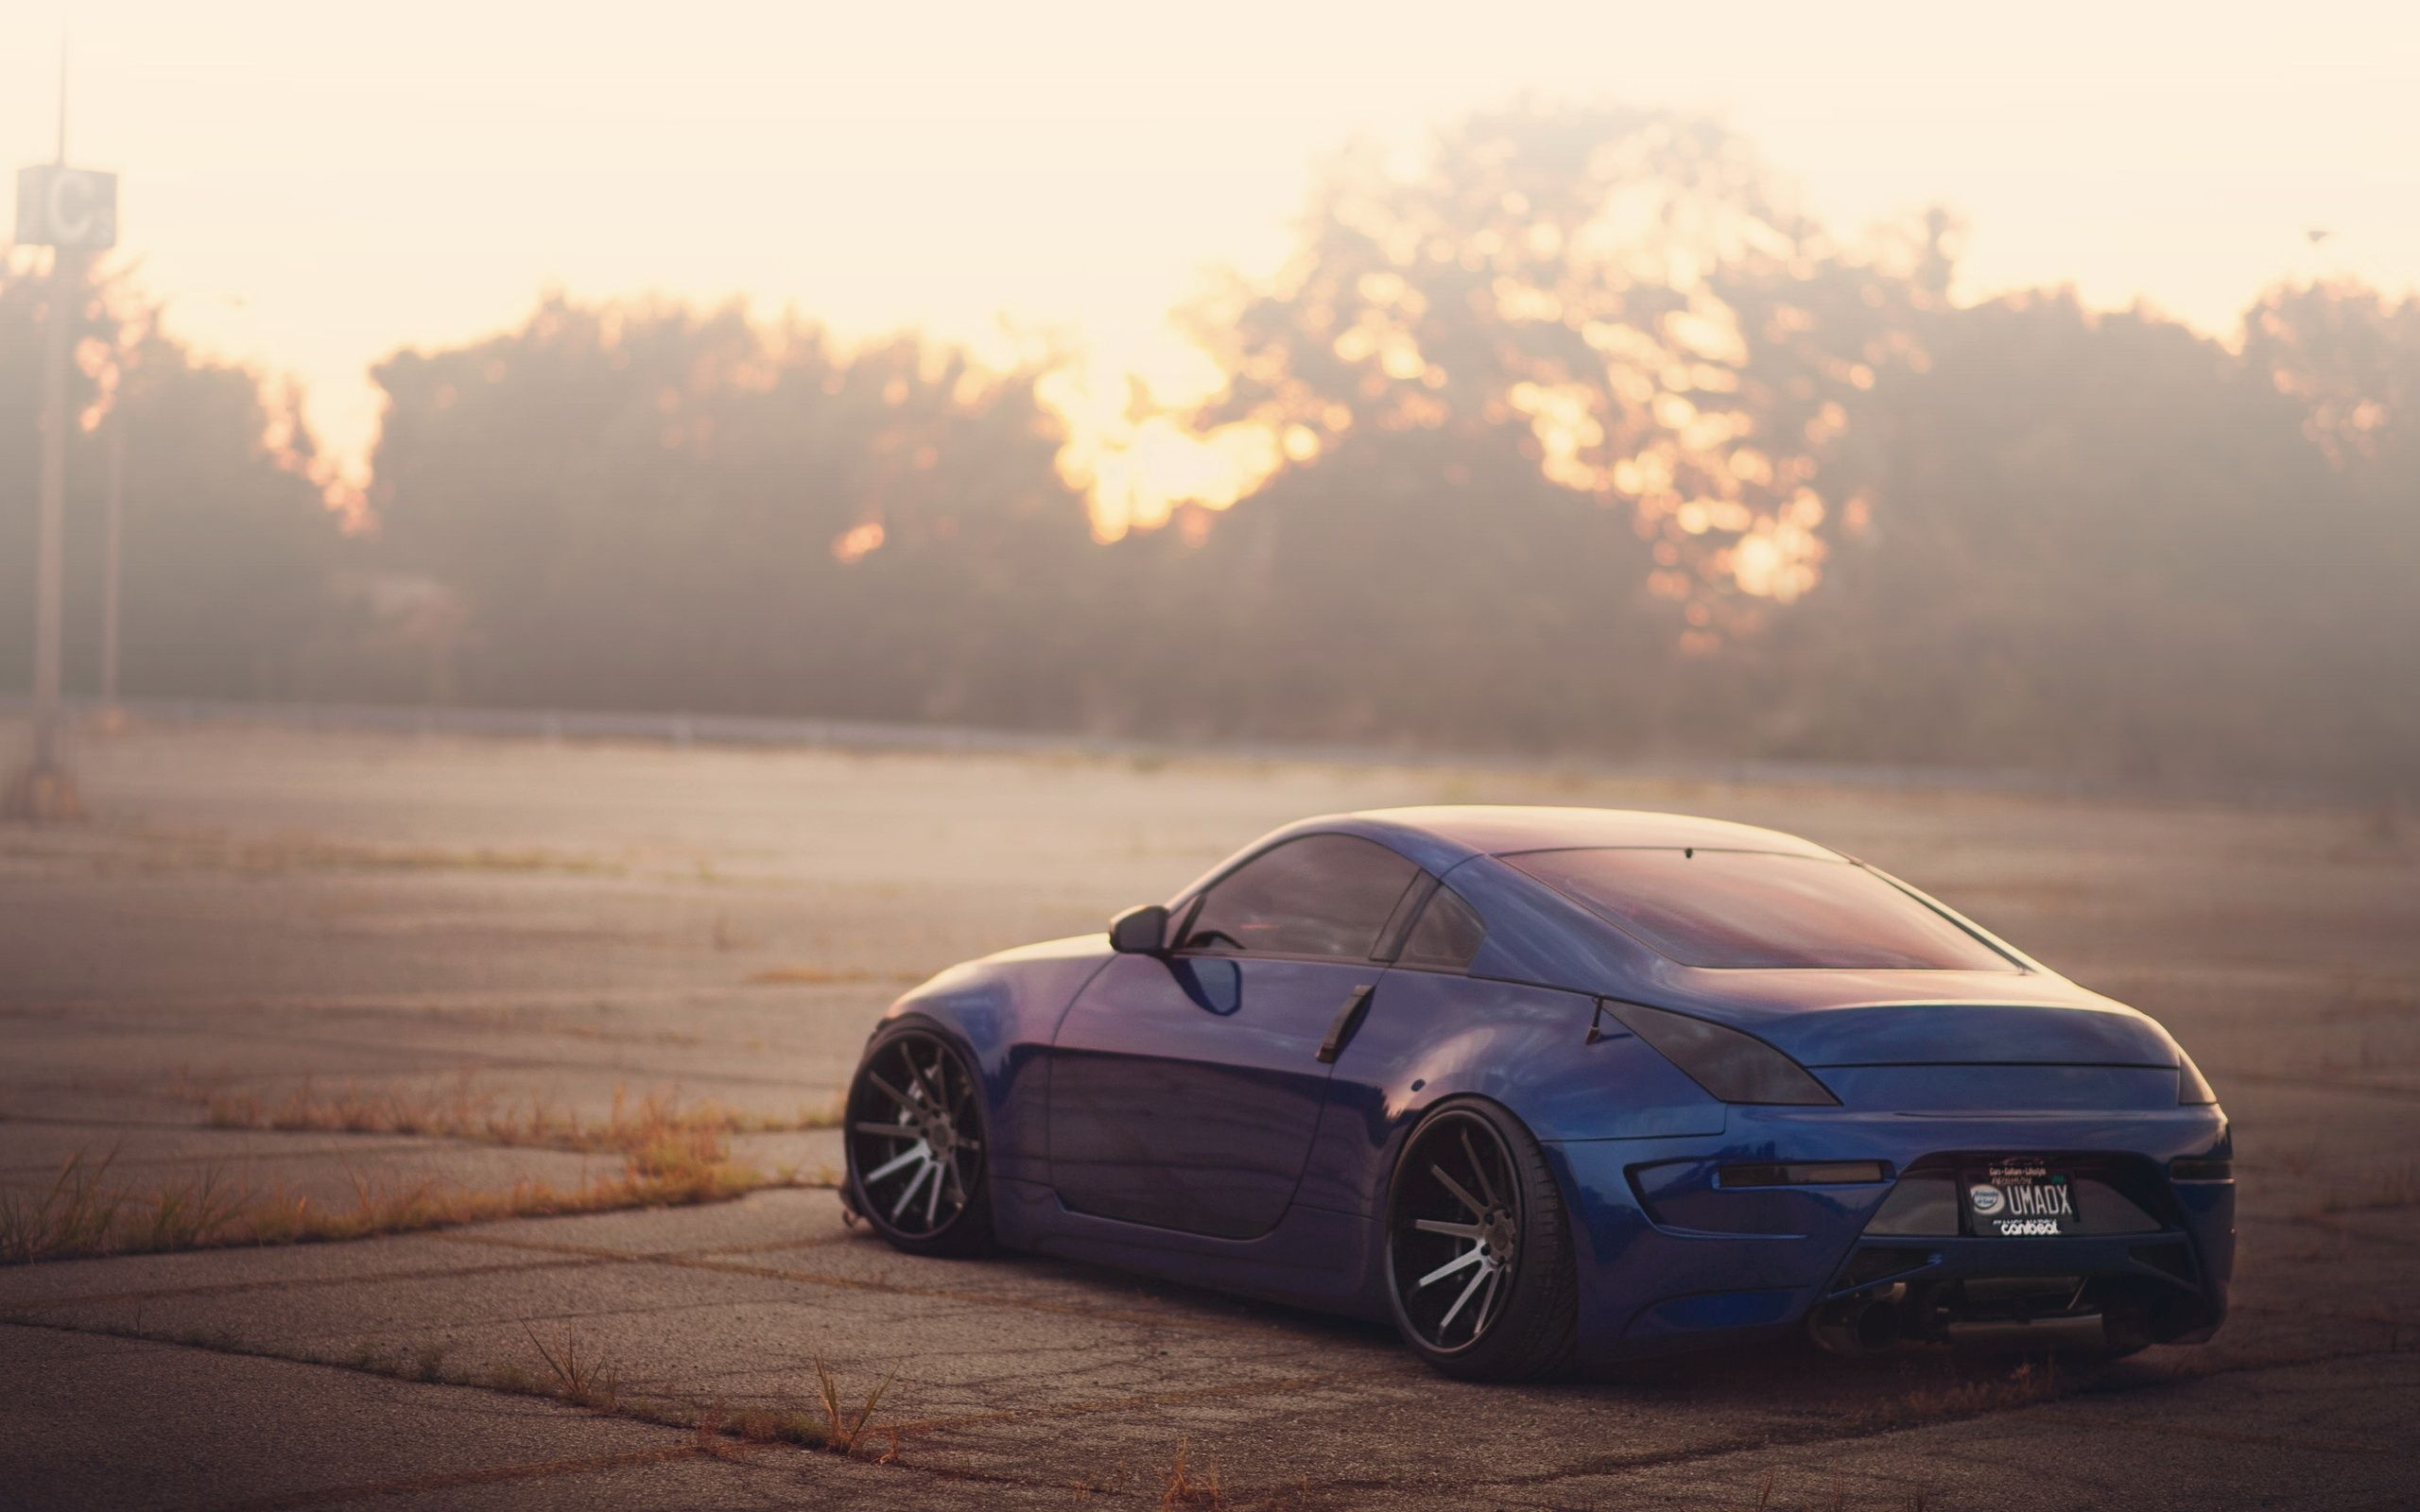 nissan 350z modified wallpapers pictures photos images | 350 z